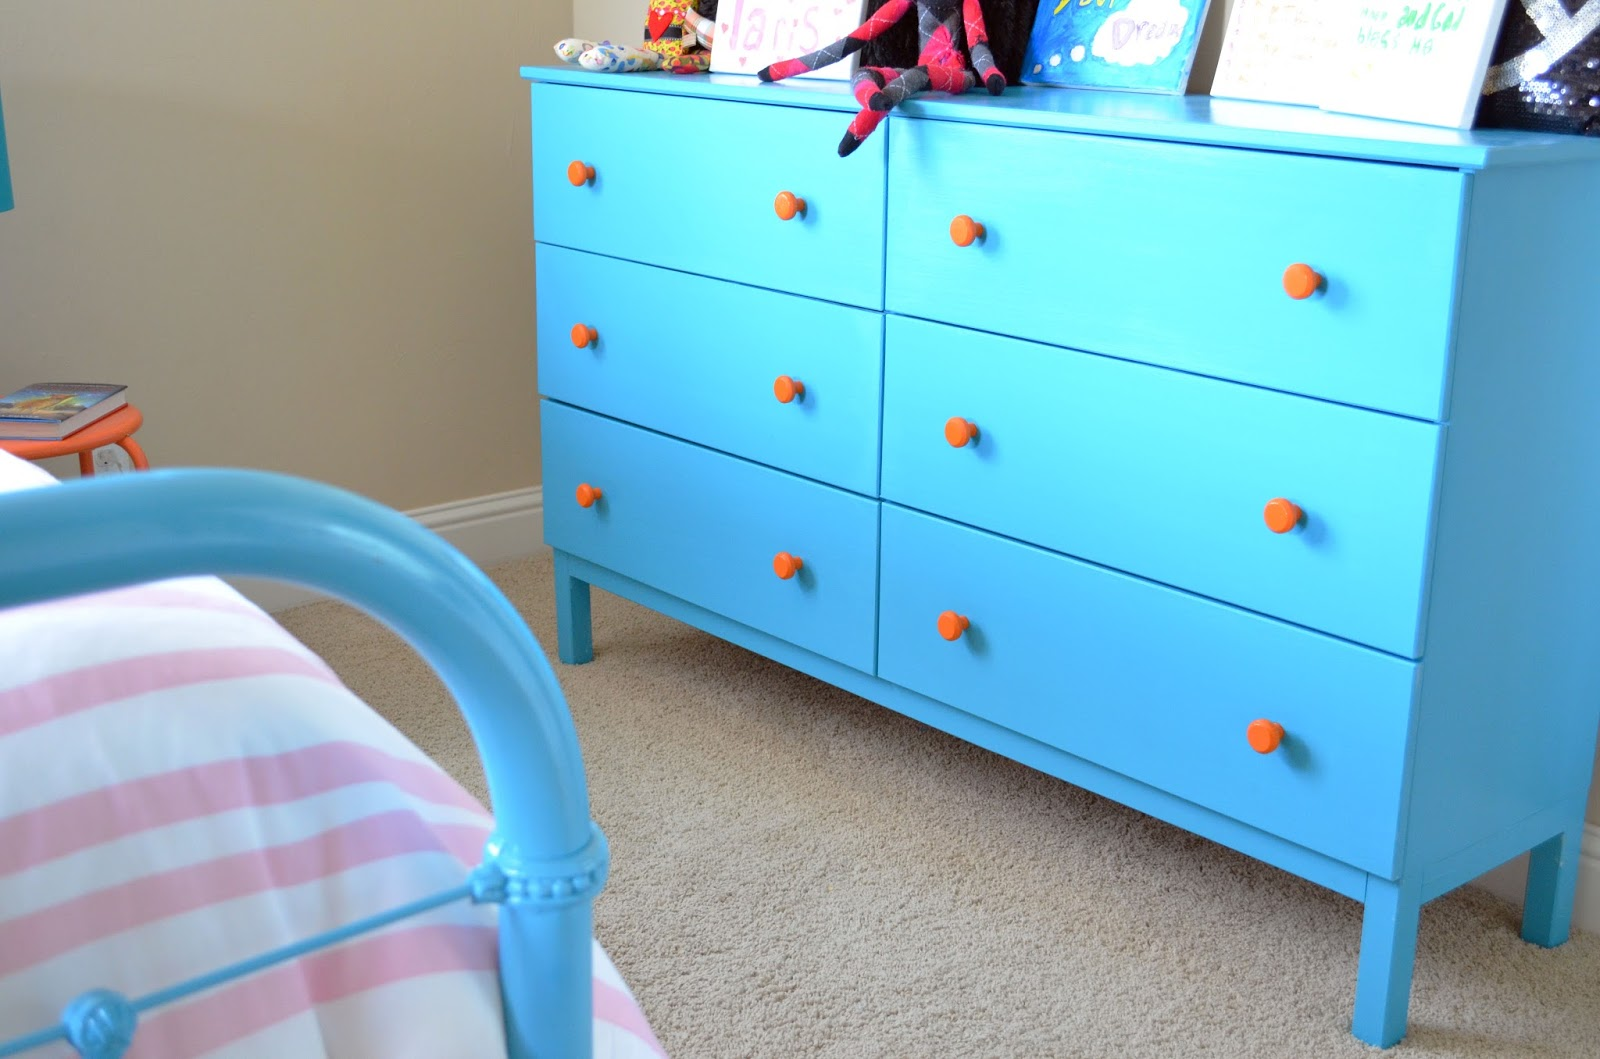 Stacy + Charlie: turquoise, pink, and orange bedroom install